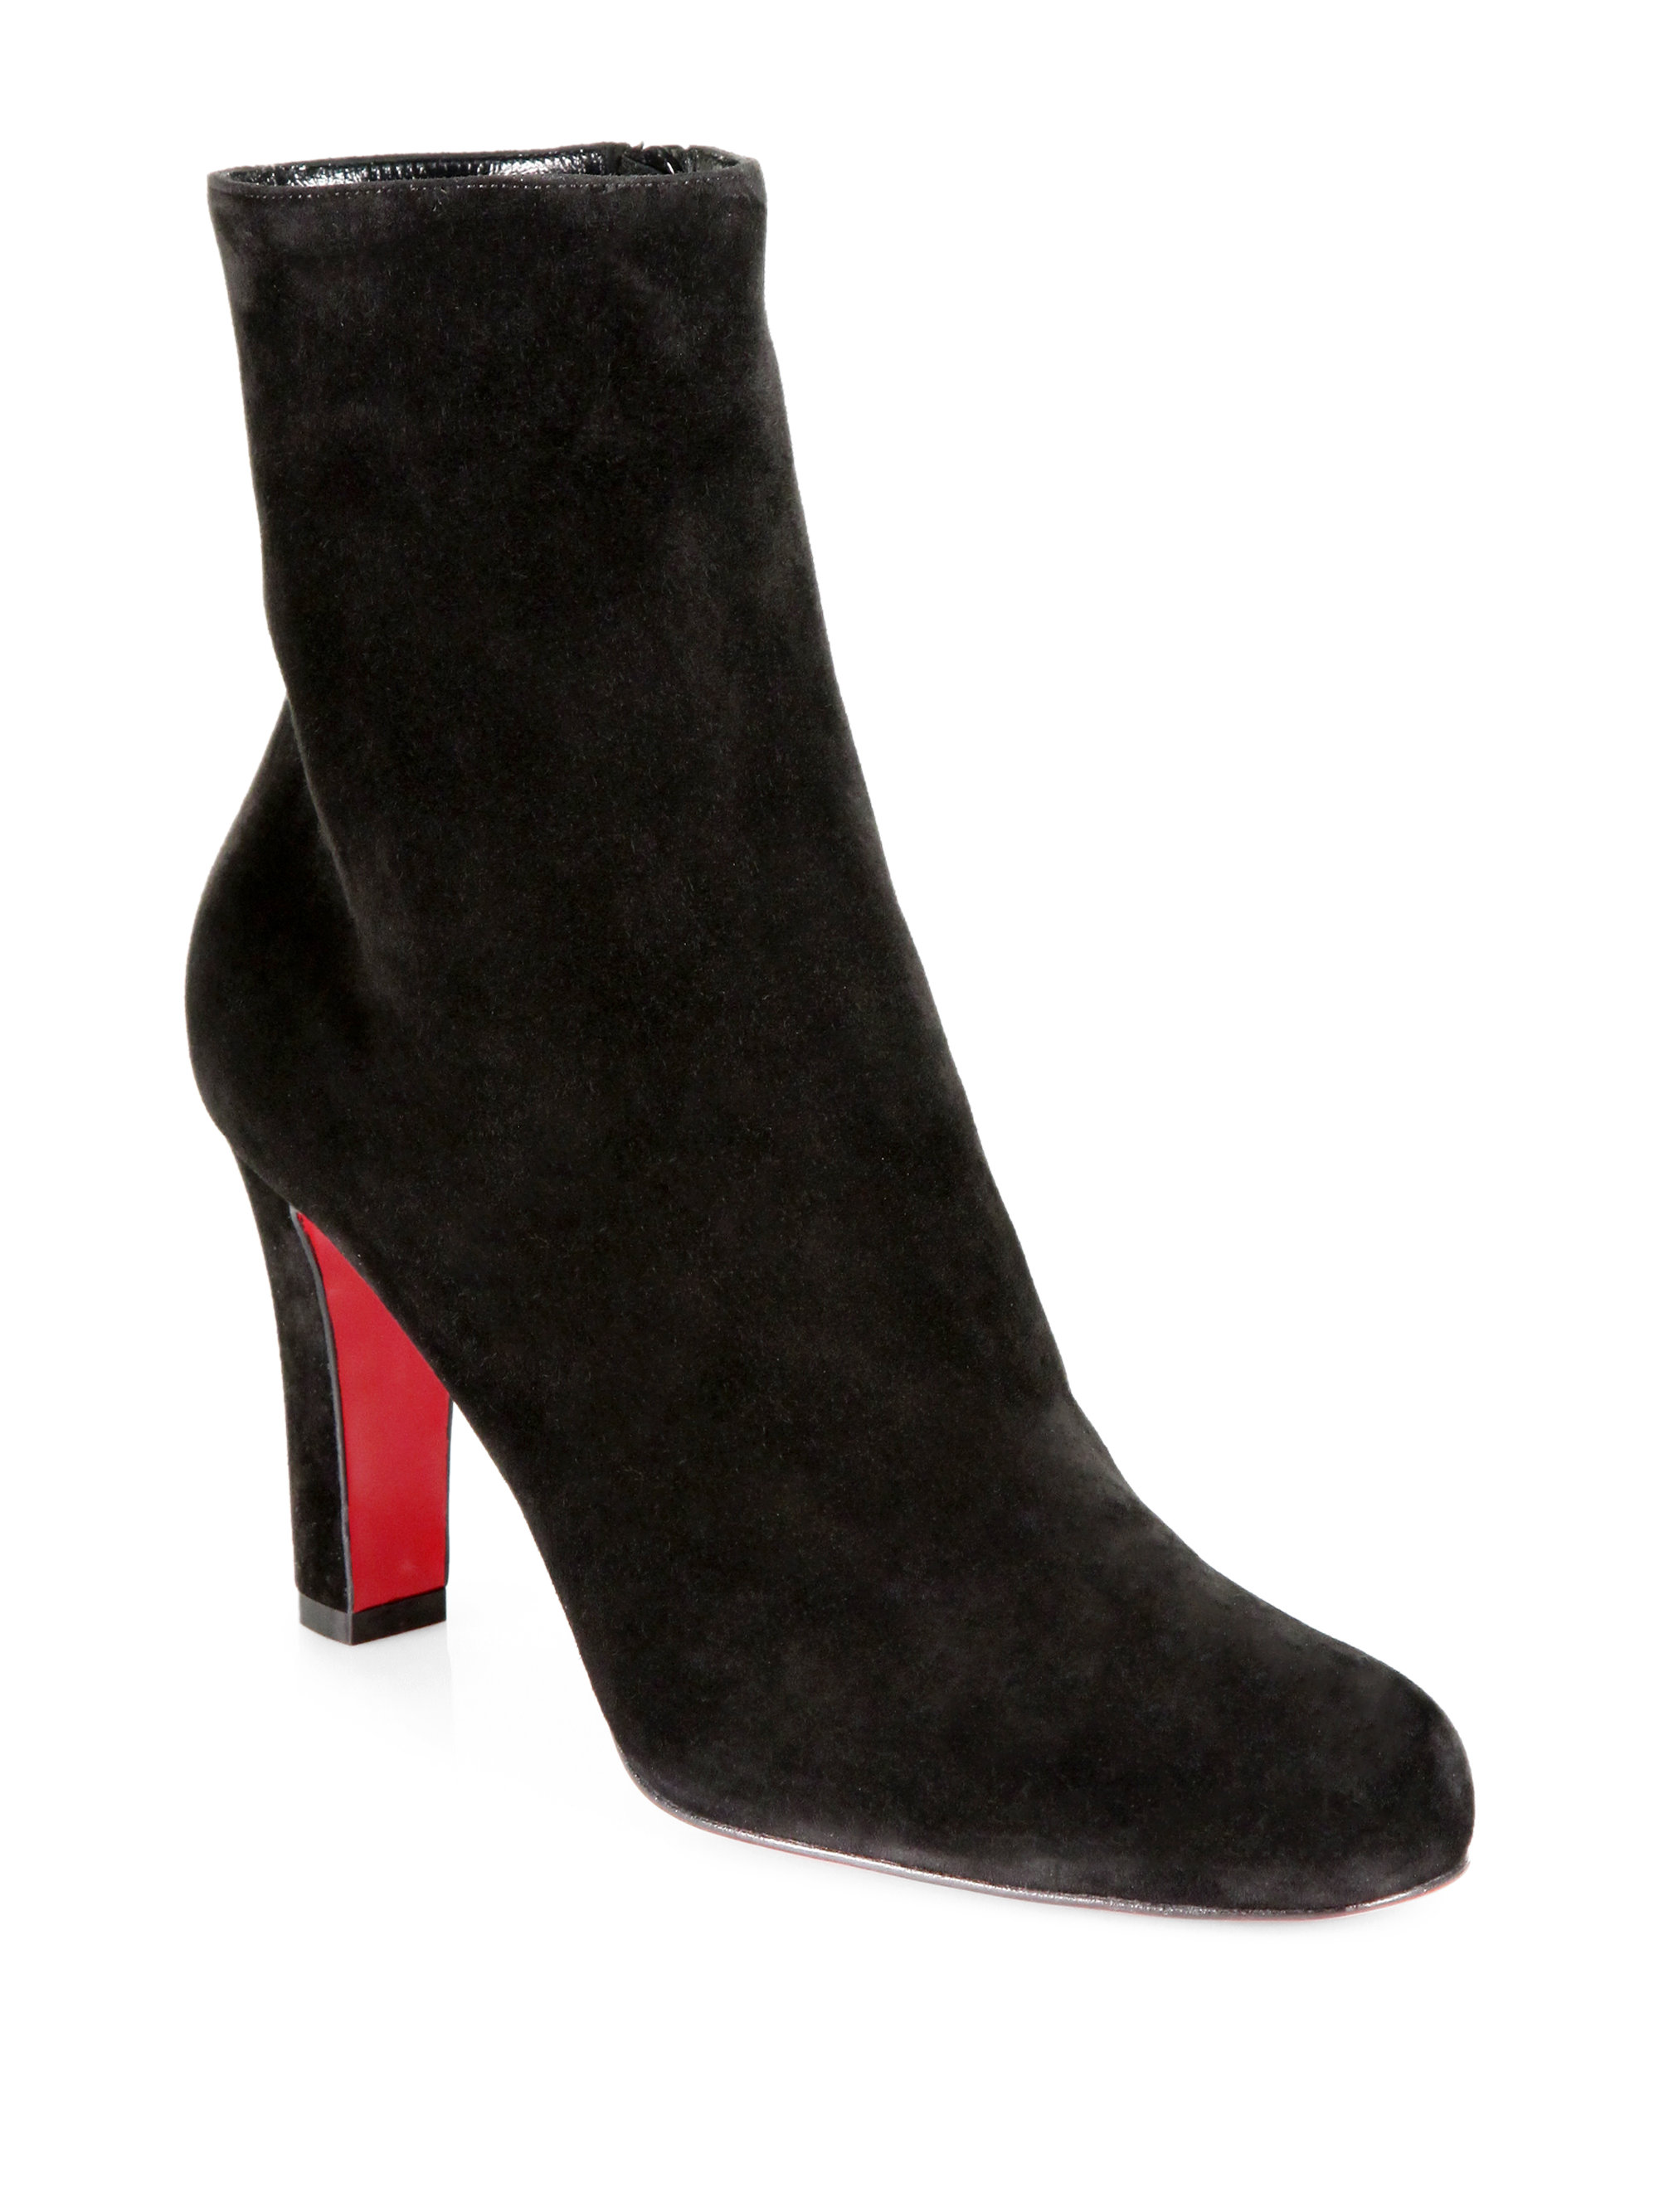 brand new ceeab aebf1 france christian louboutin suede ankle boots 261db 4330e